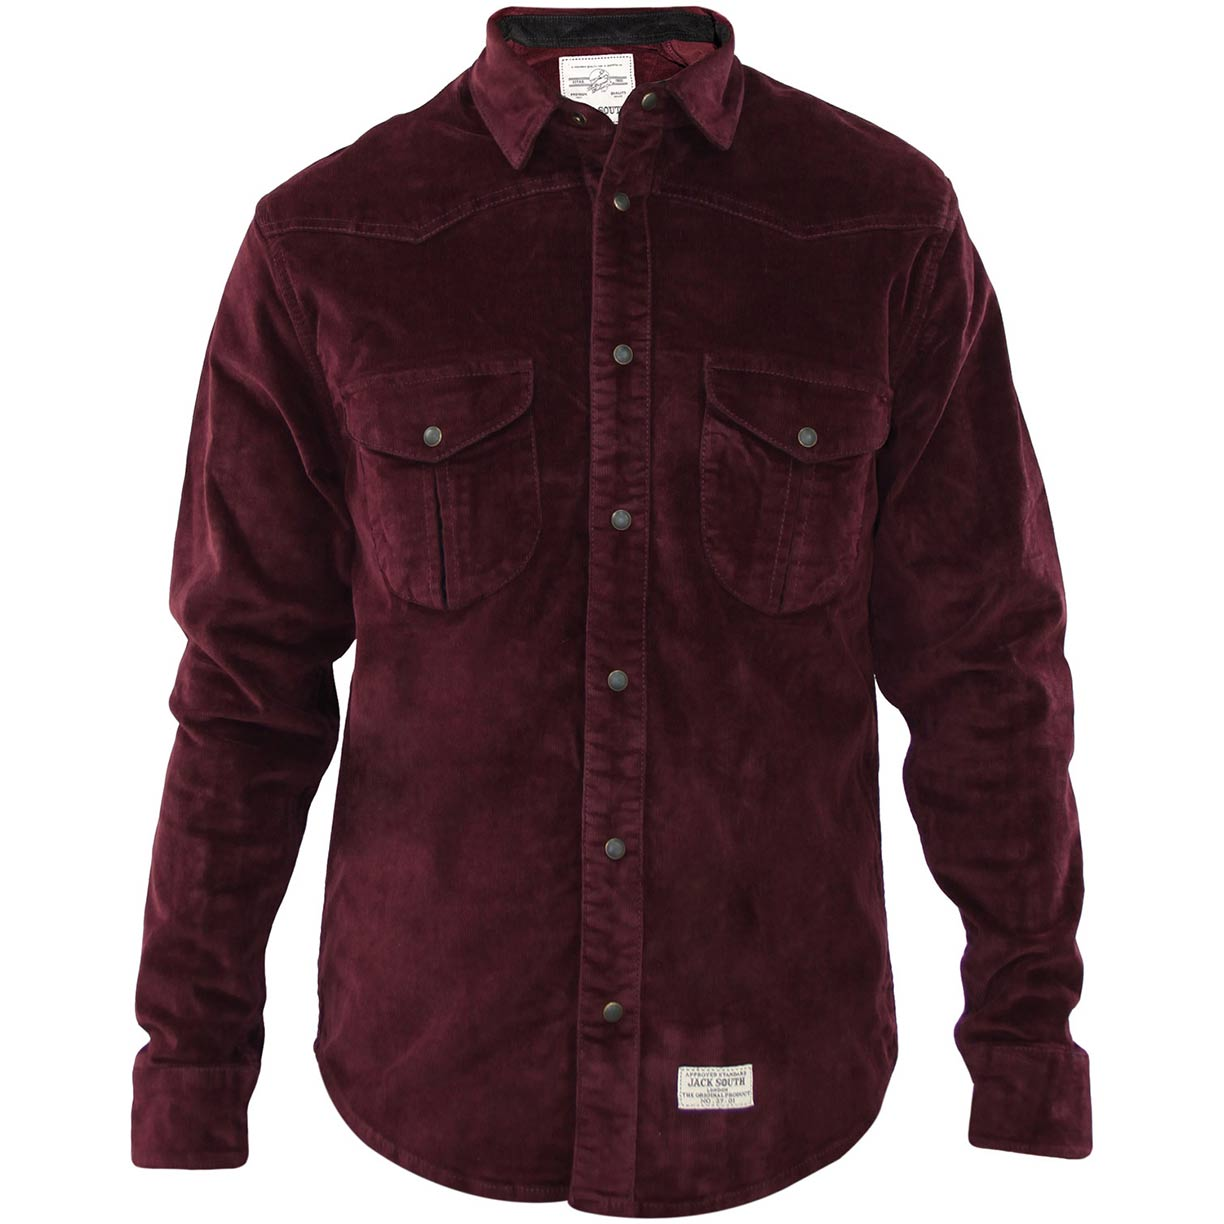 Jack South Shirt Soria Wine